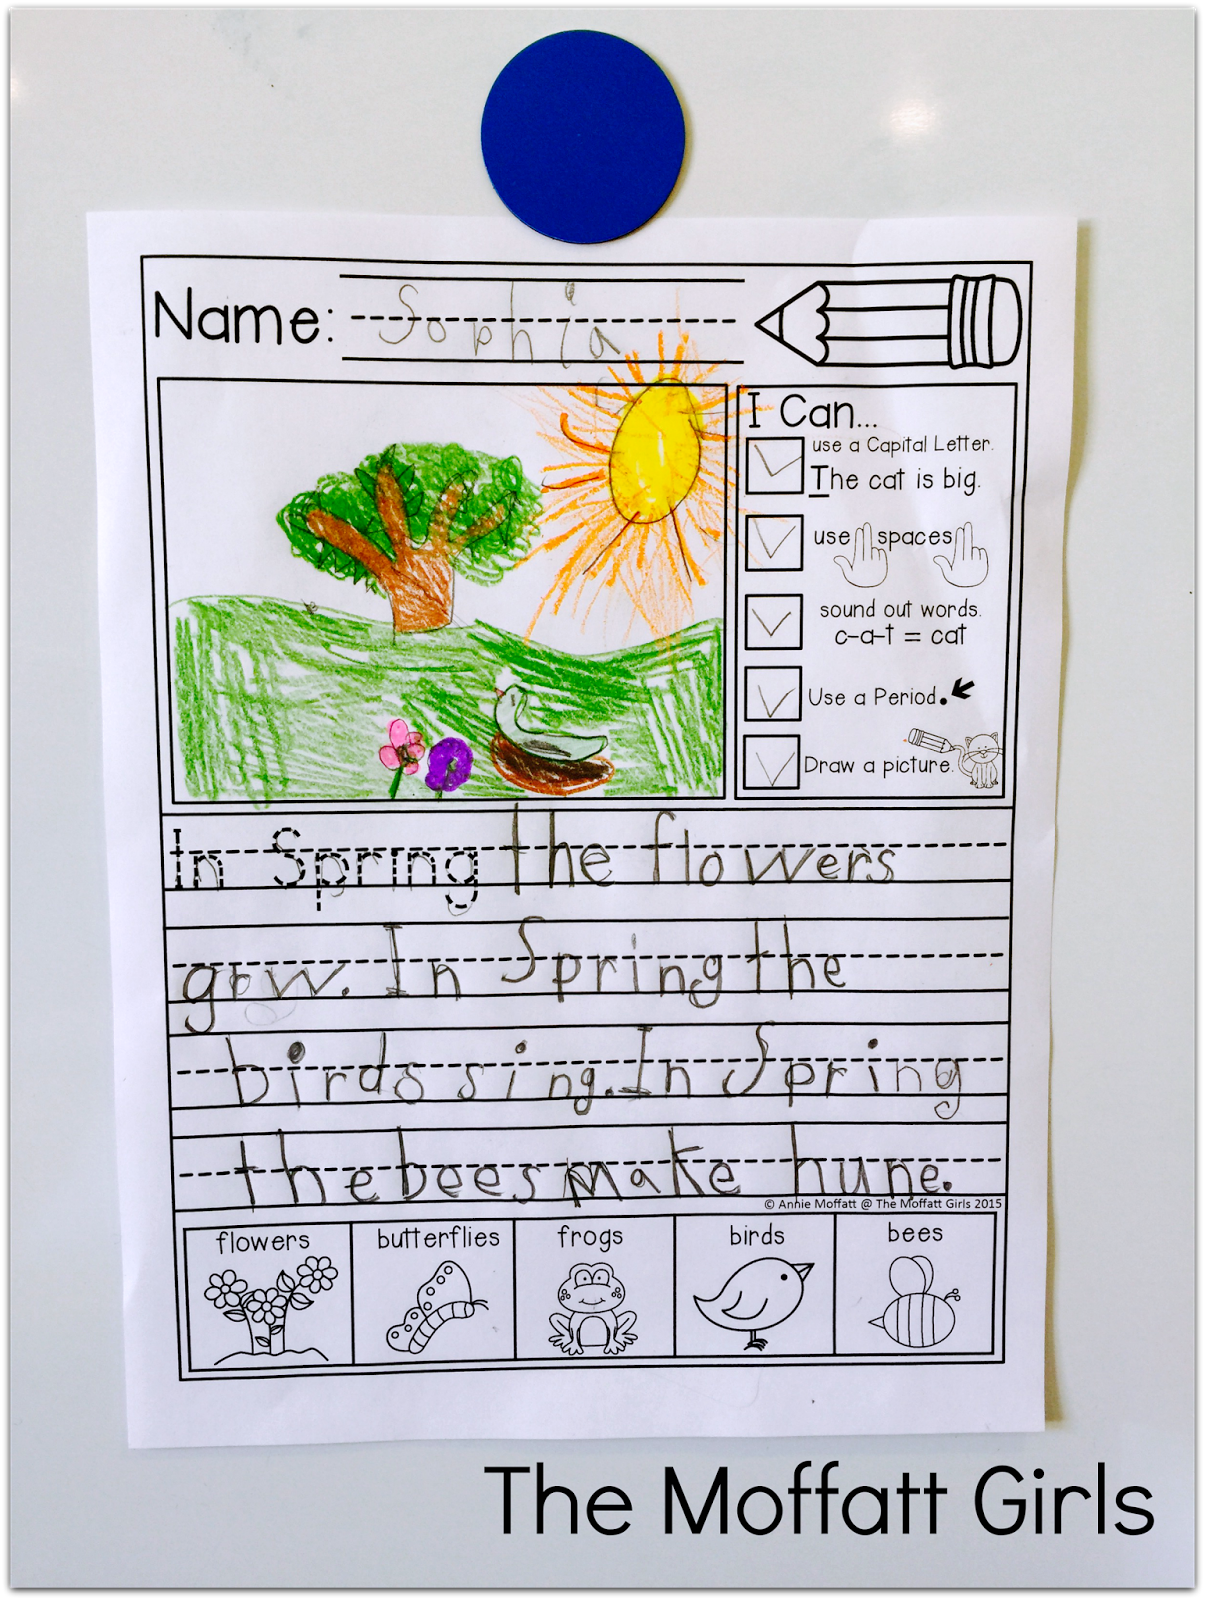 Kindergarten And 1st Grade Writing Journal Prompts With I Can Statements And An Illustrated